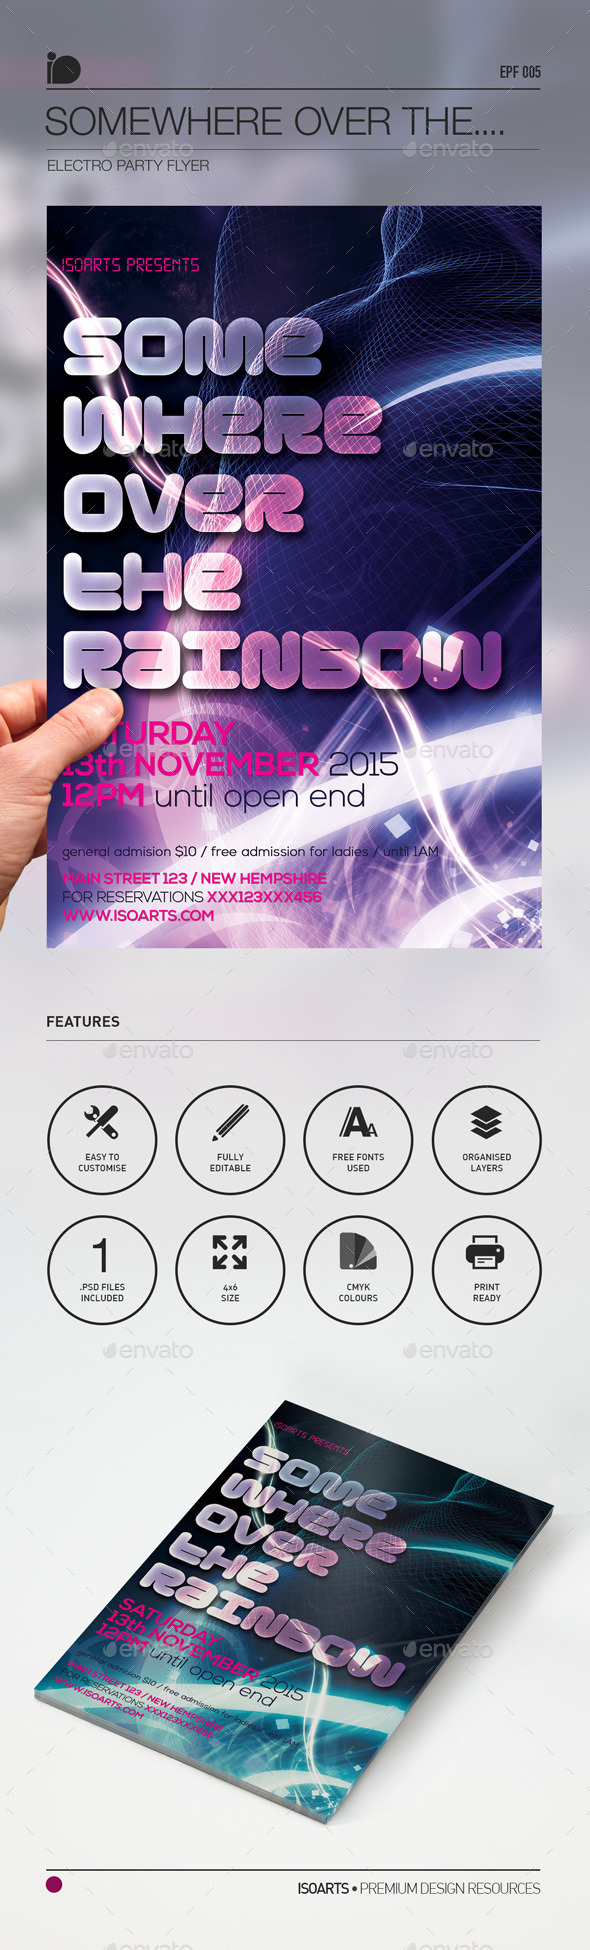 Electro Party Flyer • Somewhere Over the Rainbow - Clubs & Parties Events